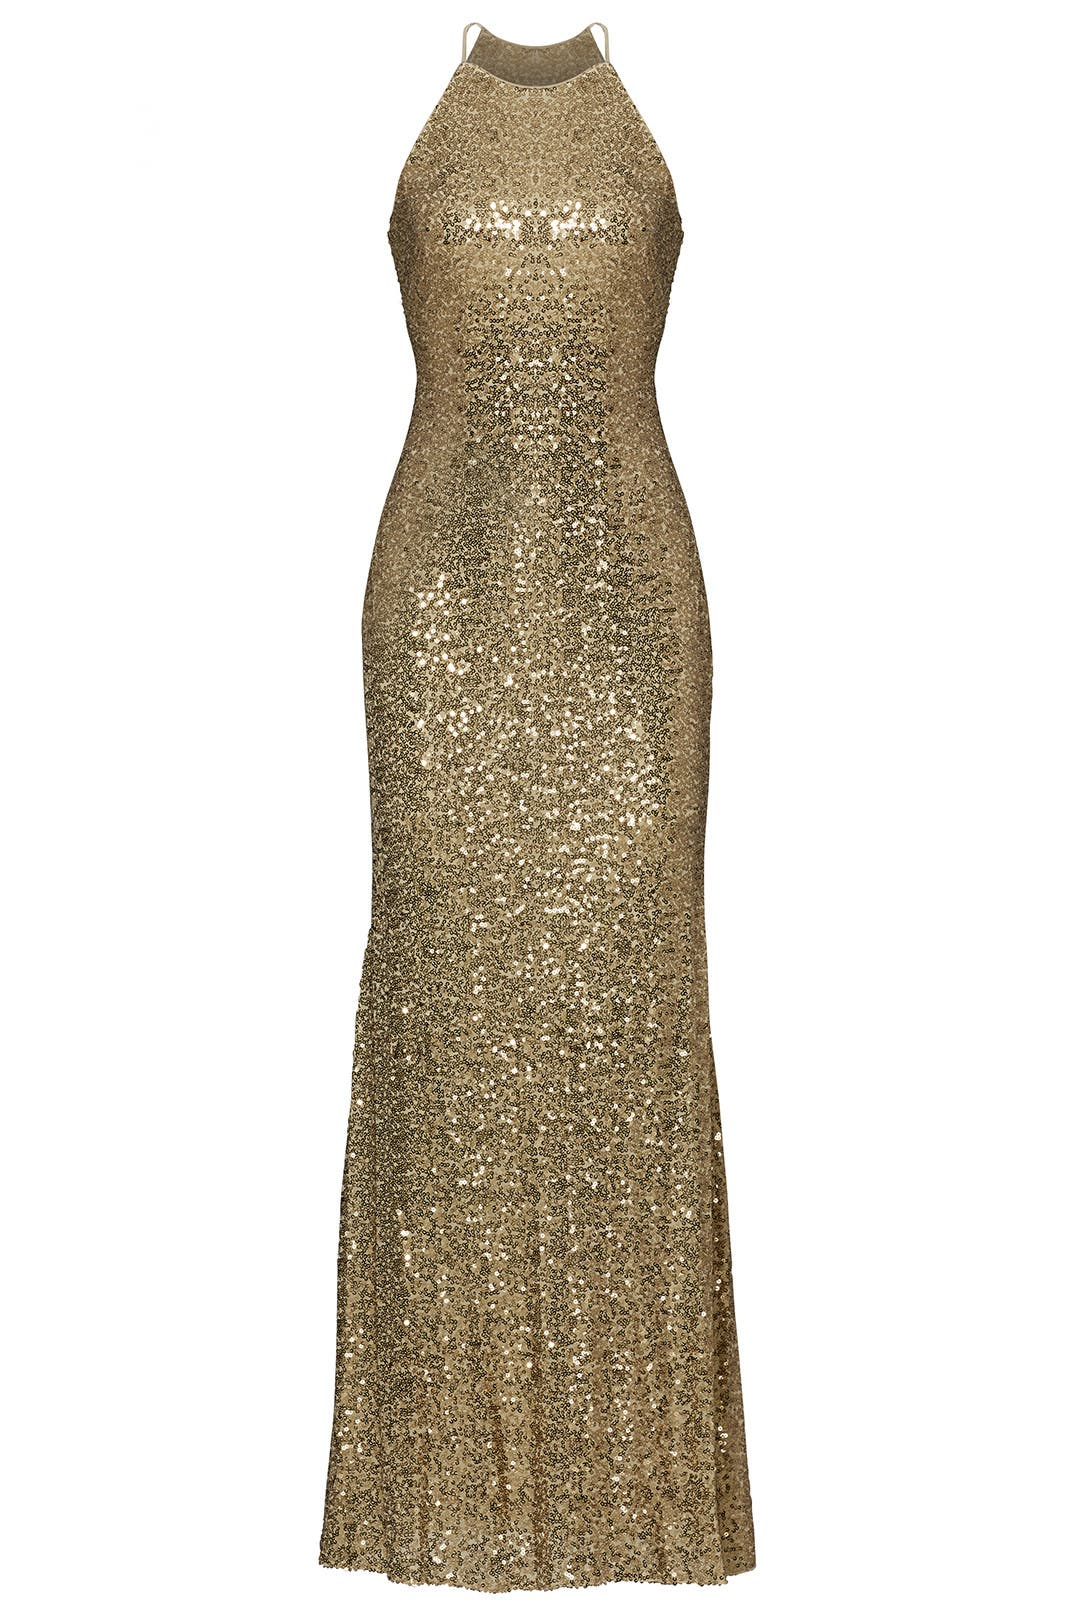 Gold Sequin Halter Gown by Badgley Mischka for $100 | Rent the Runway